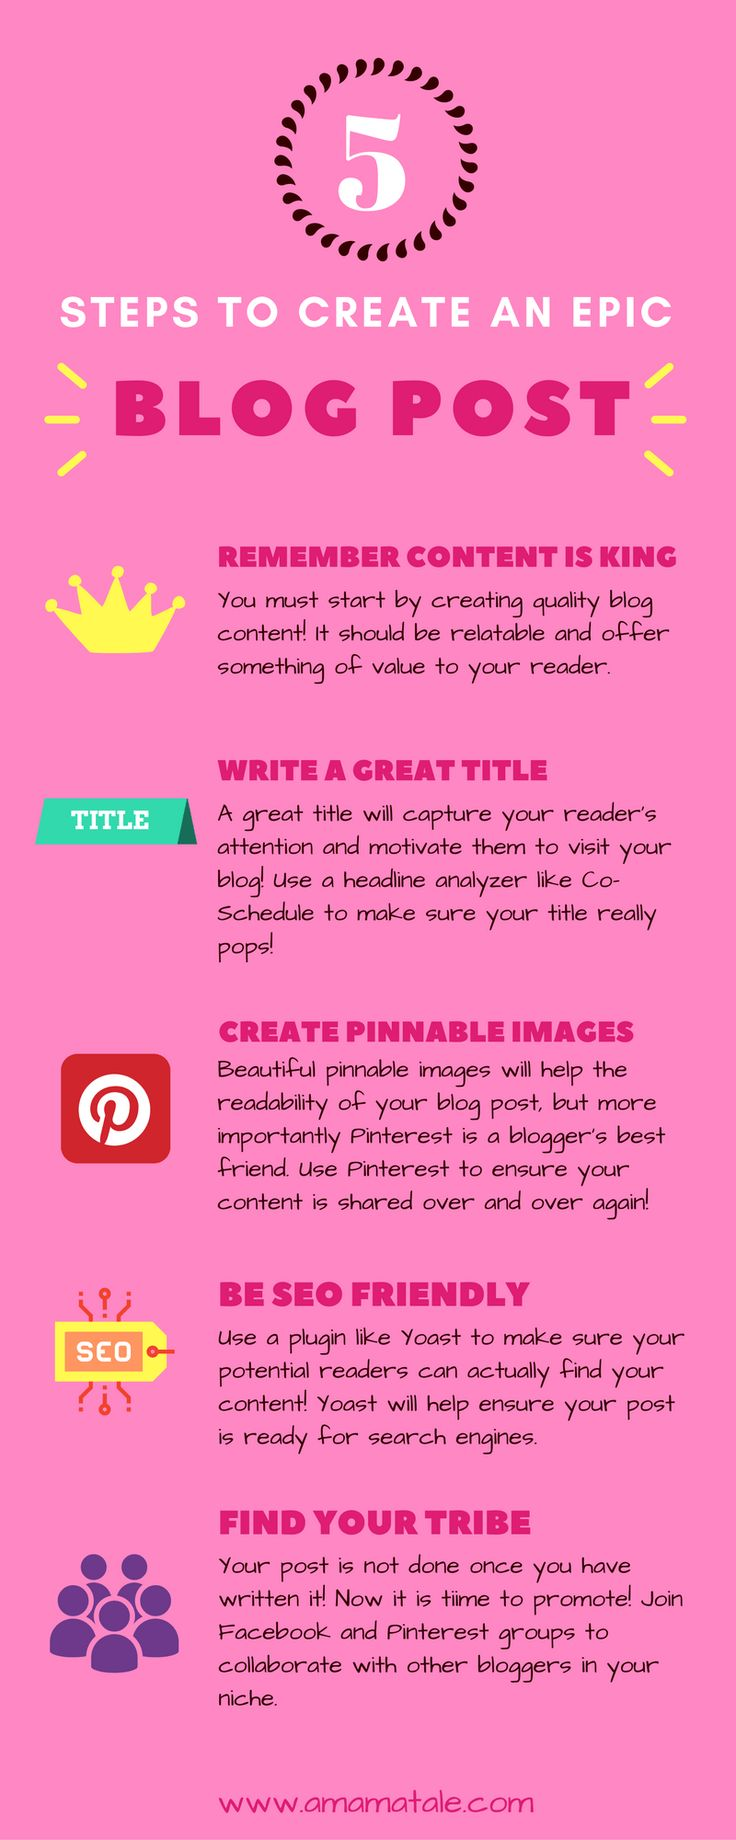 5 Steps to Create an Epic Blog Post What every blog post really needs to get great blog traffic to your site and more shares of your content. Click to read more blogging tips and tricks!  www.amamatale.com